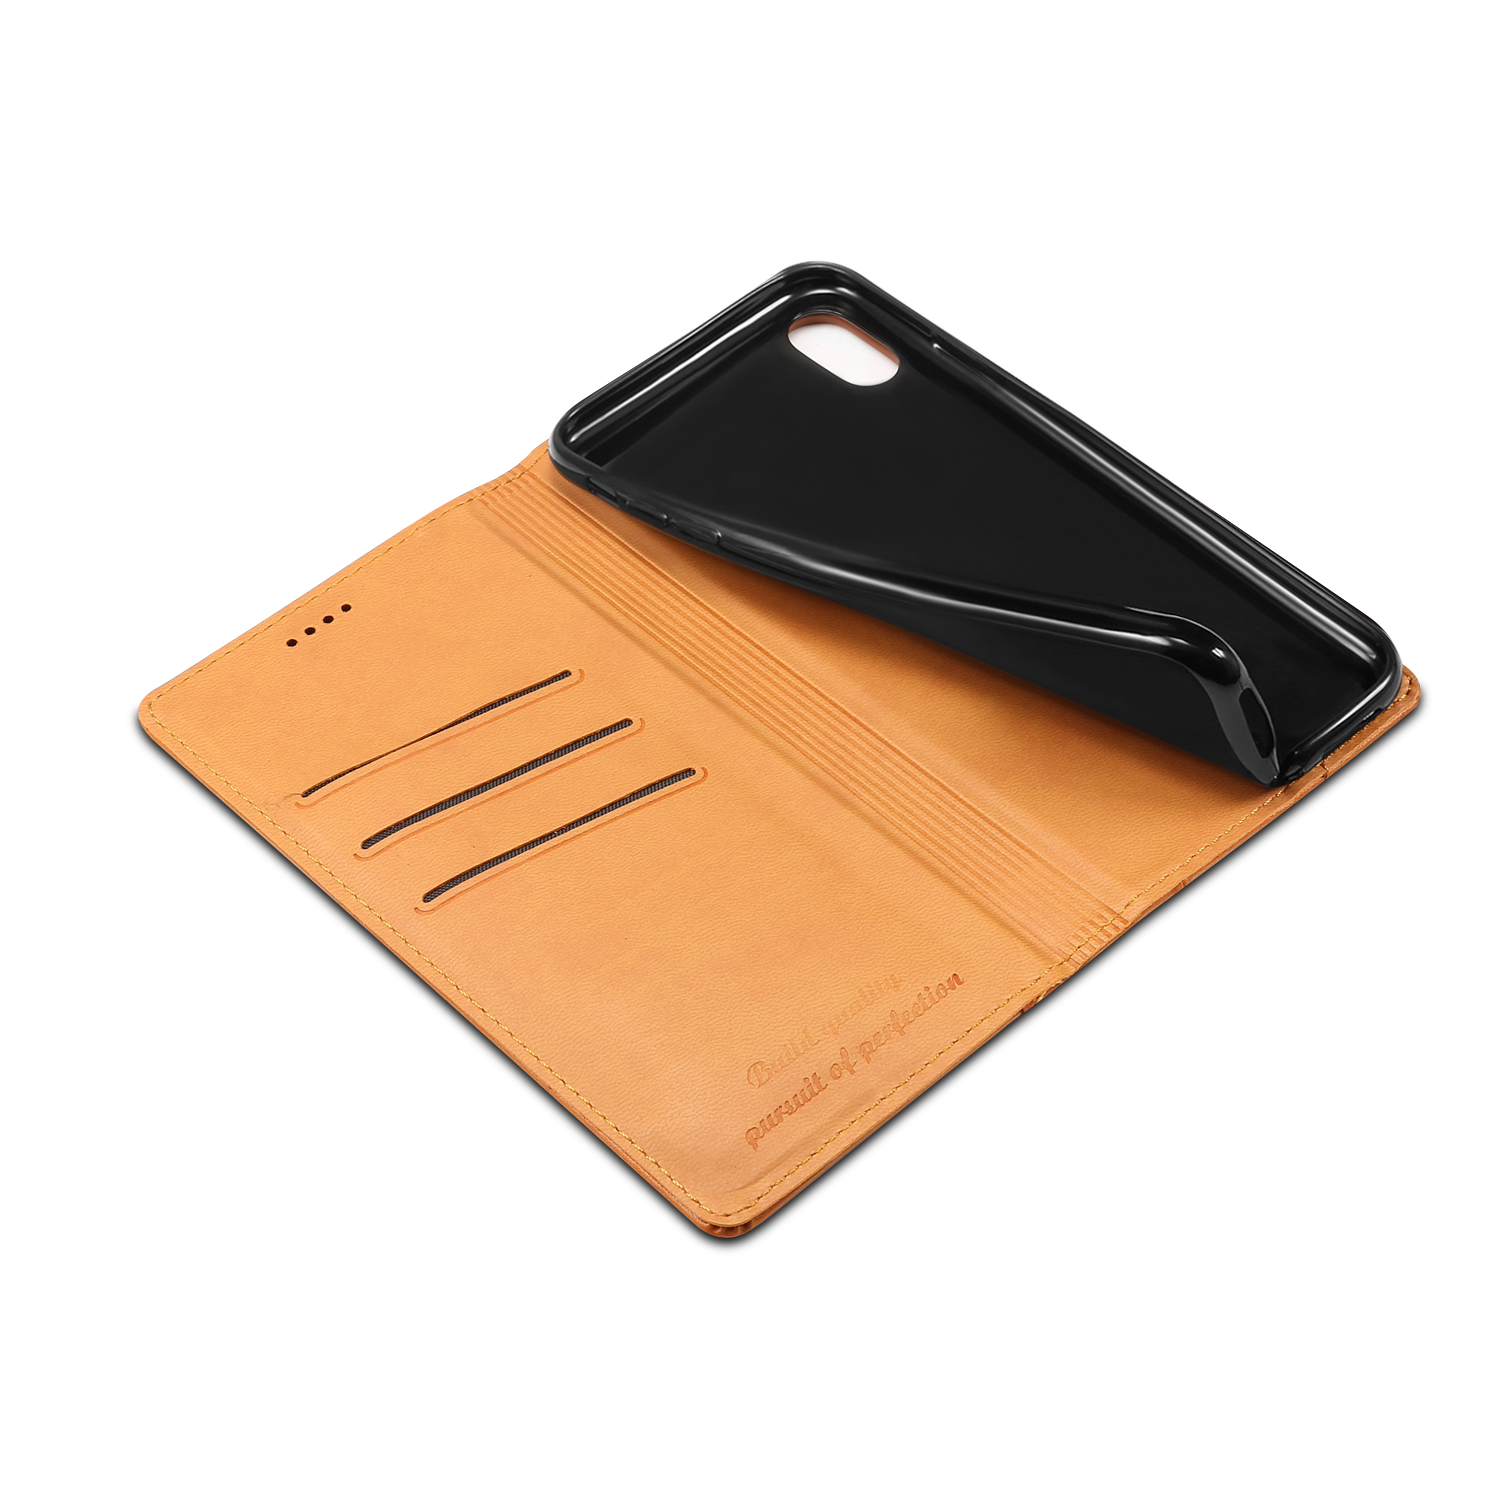 Bakeey Protective Case For iPhone XS Max Genuine Leather Magnetic Flip Wallet Kickstand Cover